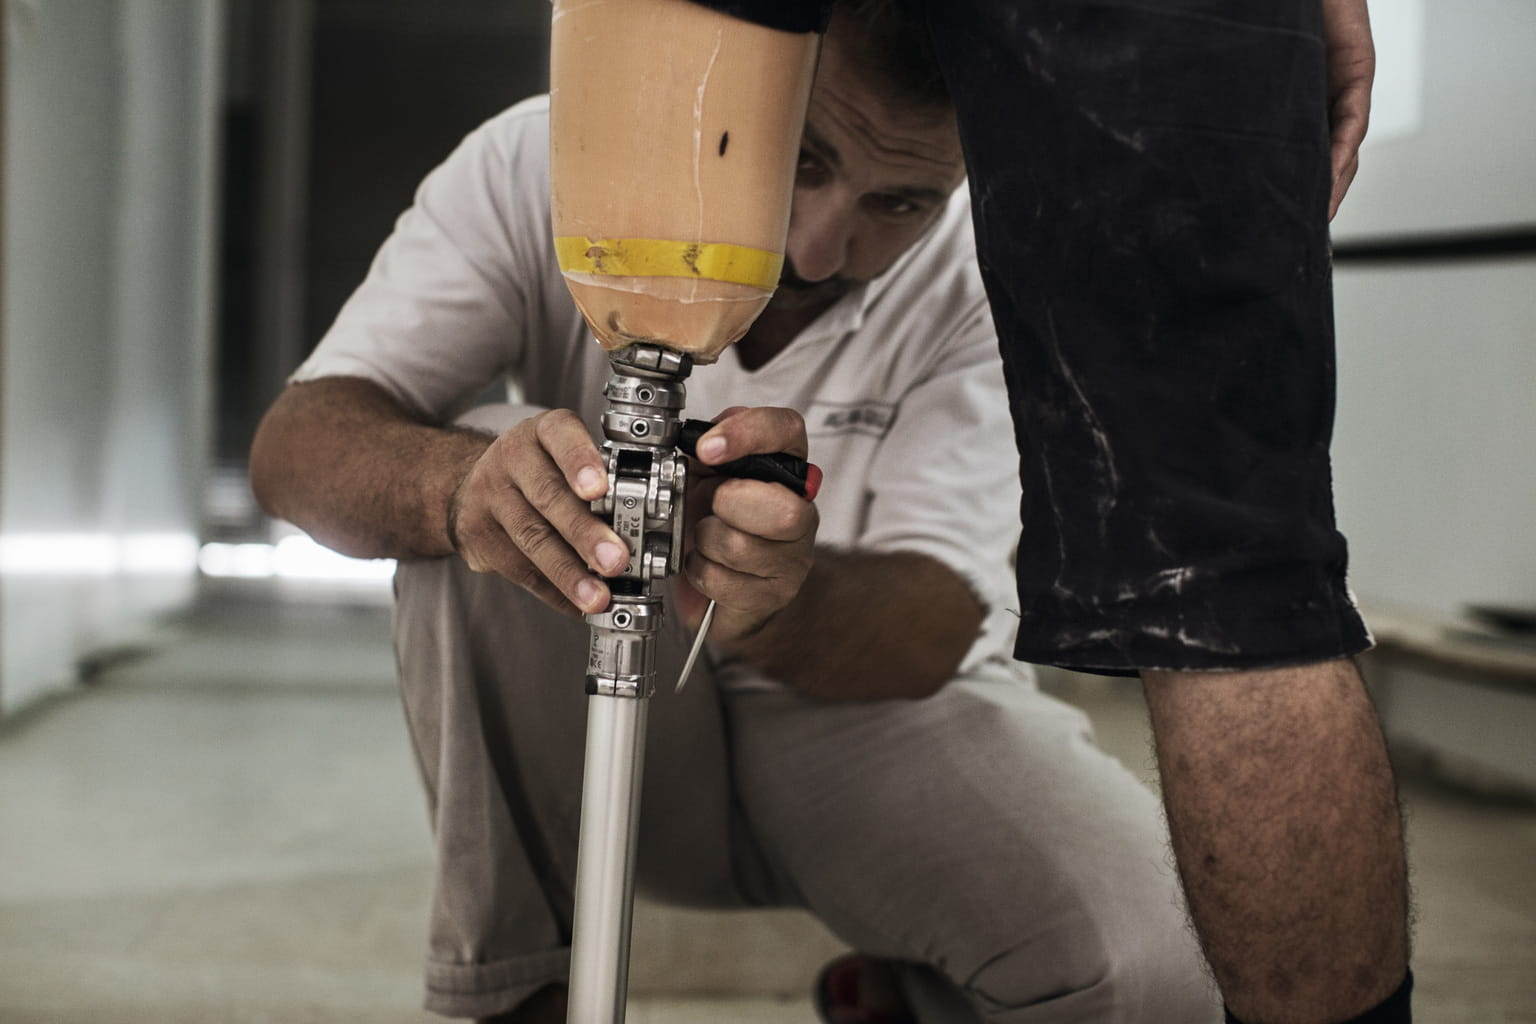 September 14, 2015, Reyhanli, Turkey. The staff continue training under doctors in Ankara and Germany and are seeking ISPO certi cation (International Society for Prosthetics and Orthotics).